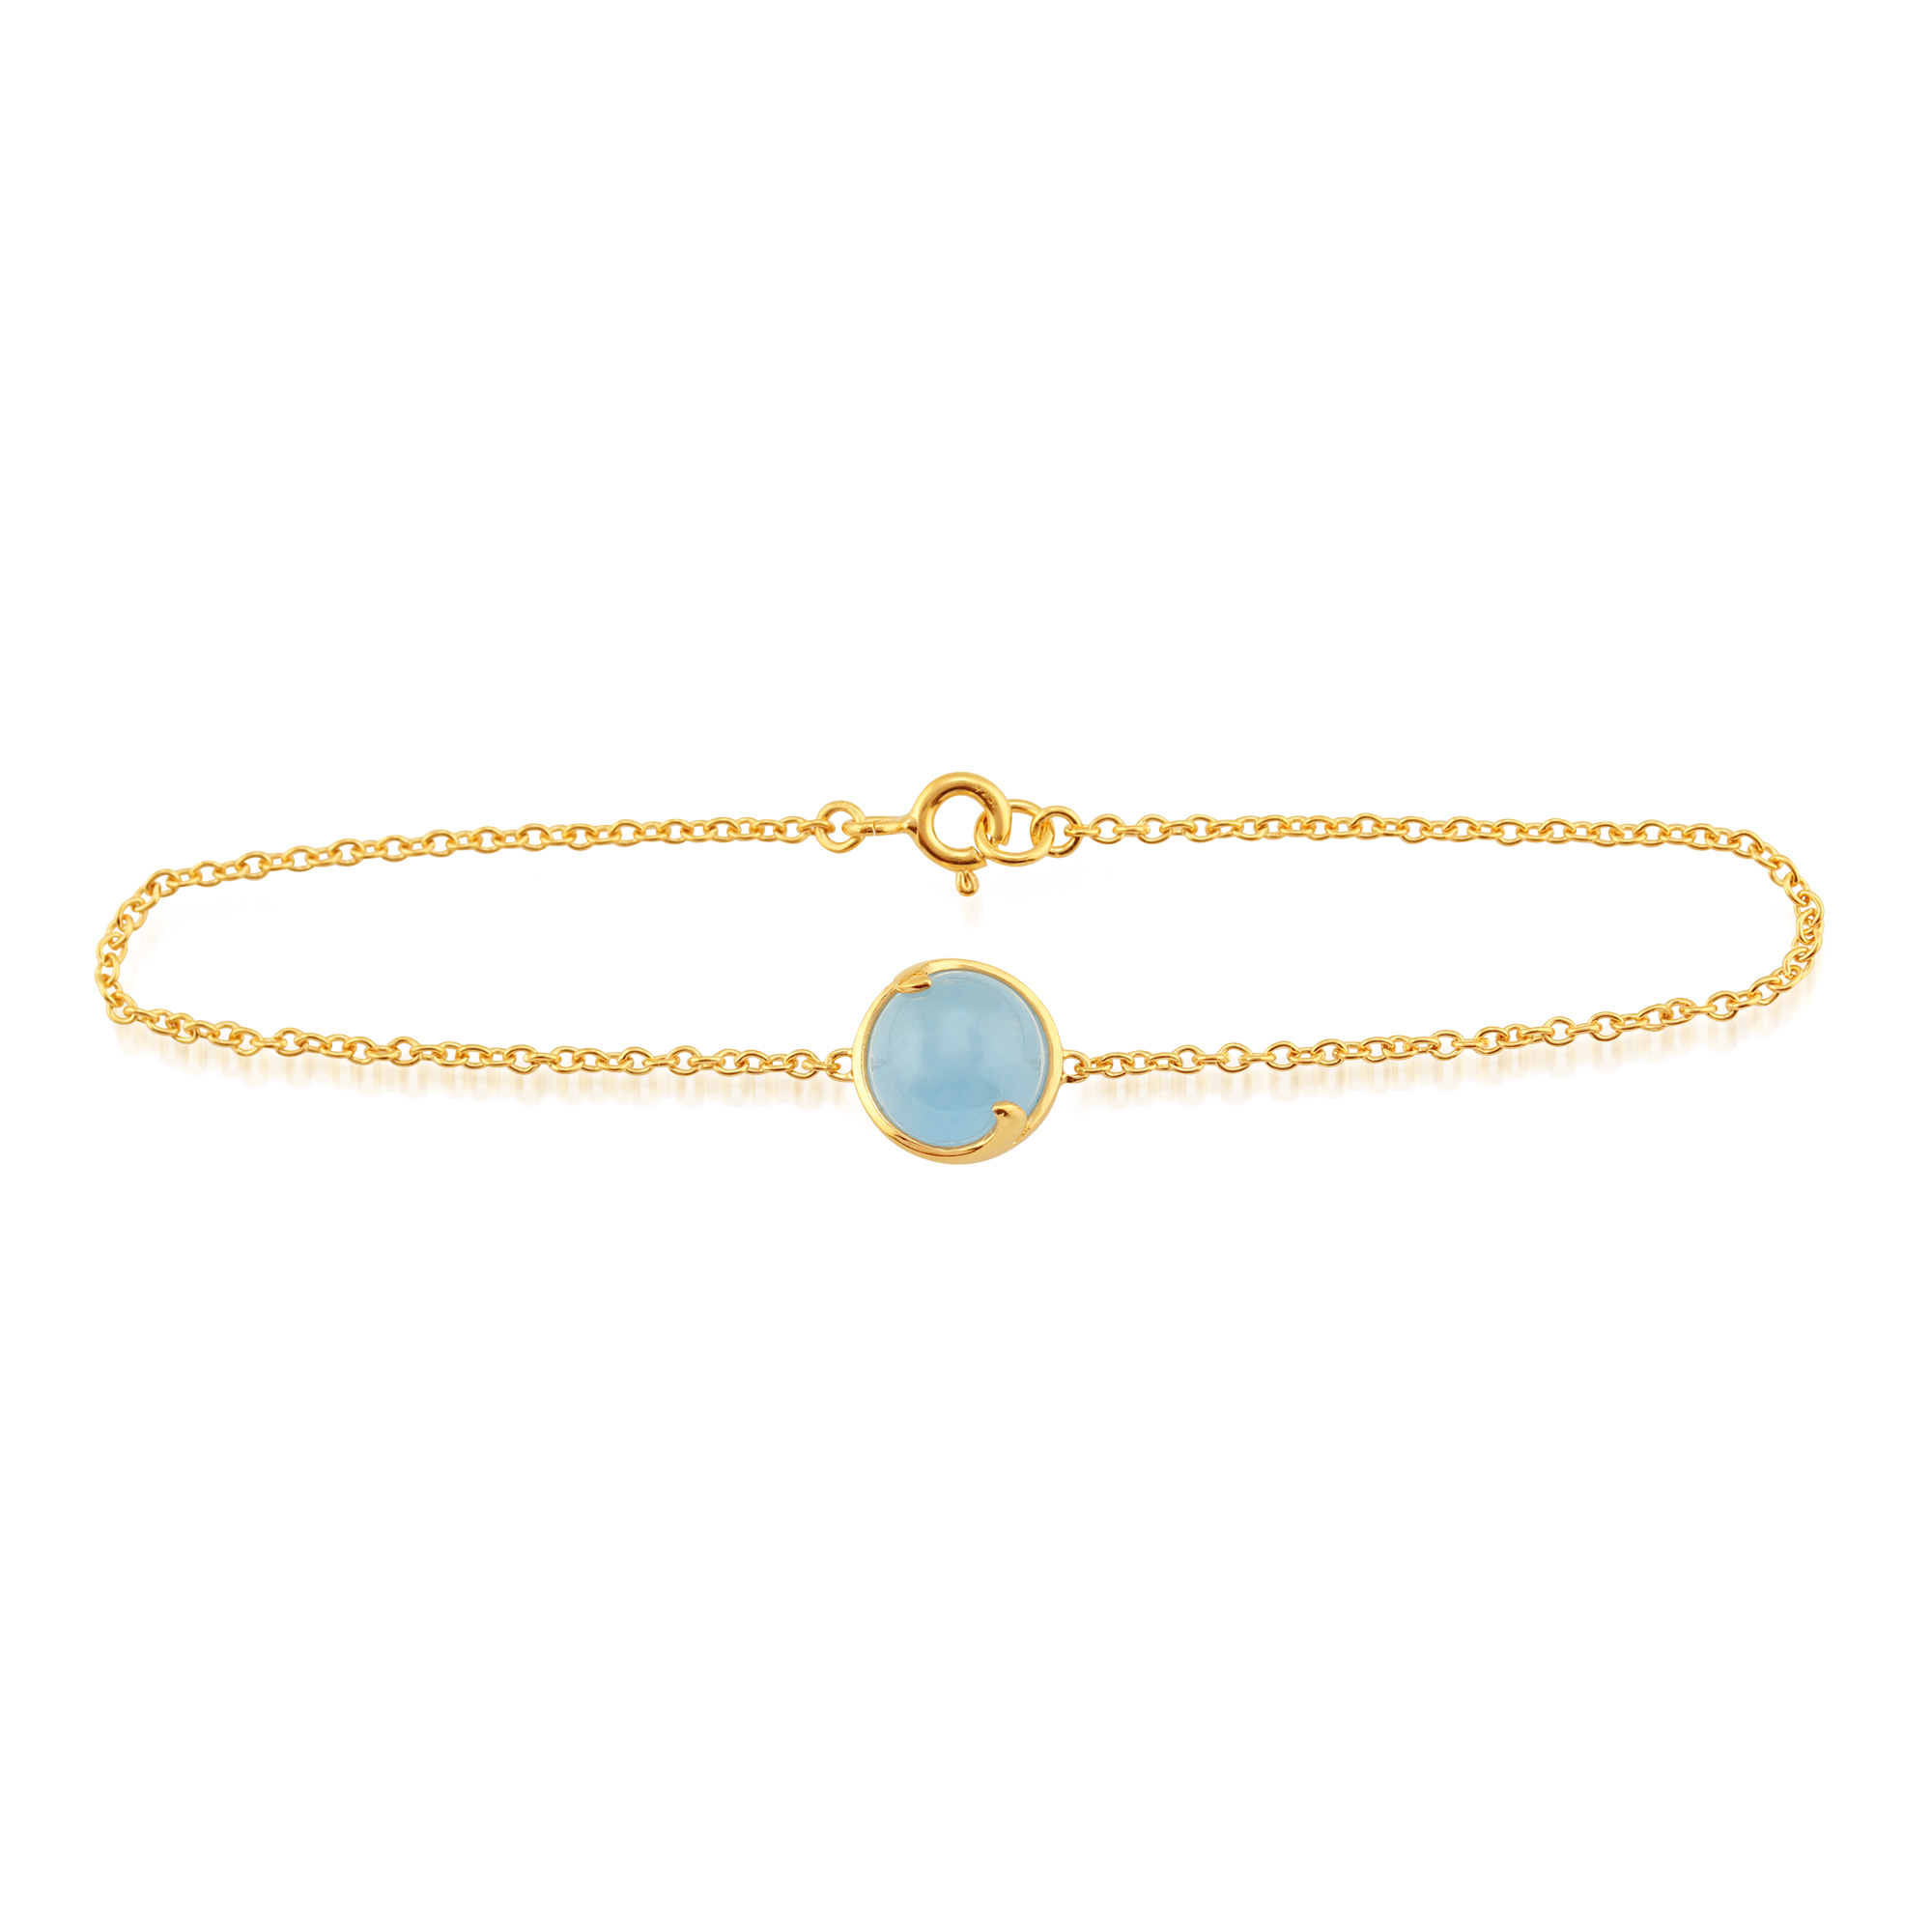 Blue Jade 'Vita' Pastel Bracelet in 9ct Yellow Gold Plated Sterling Silver